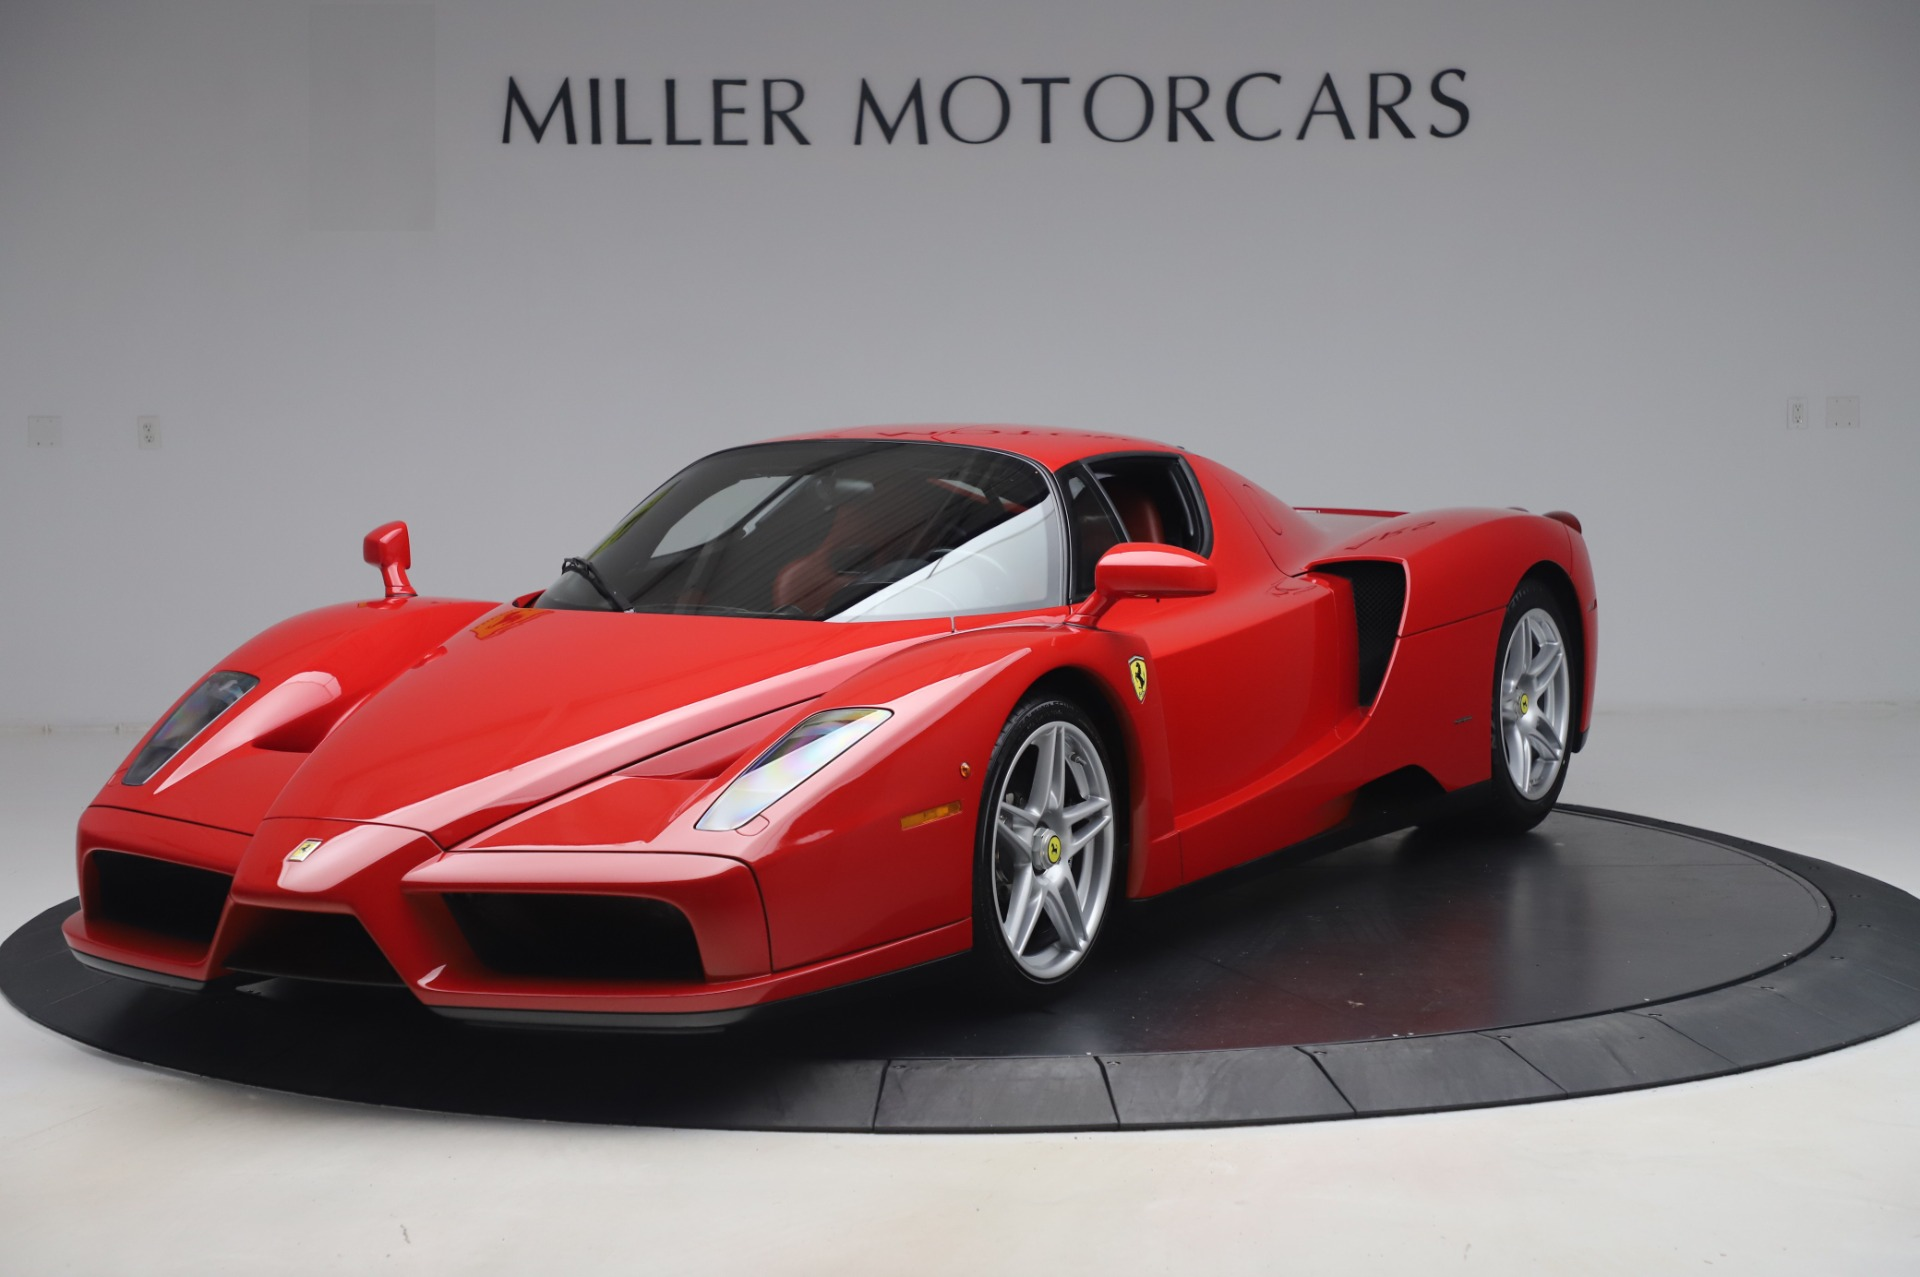 Used 2003 Ferrari Enzo for sale $2,995,000 at McLaren Greenwich in Greenwich CT 06830 1